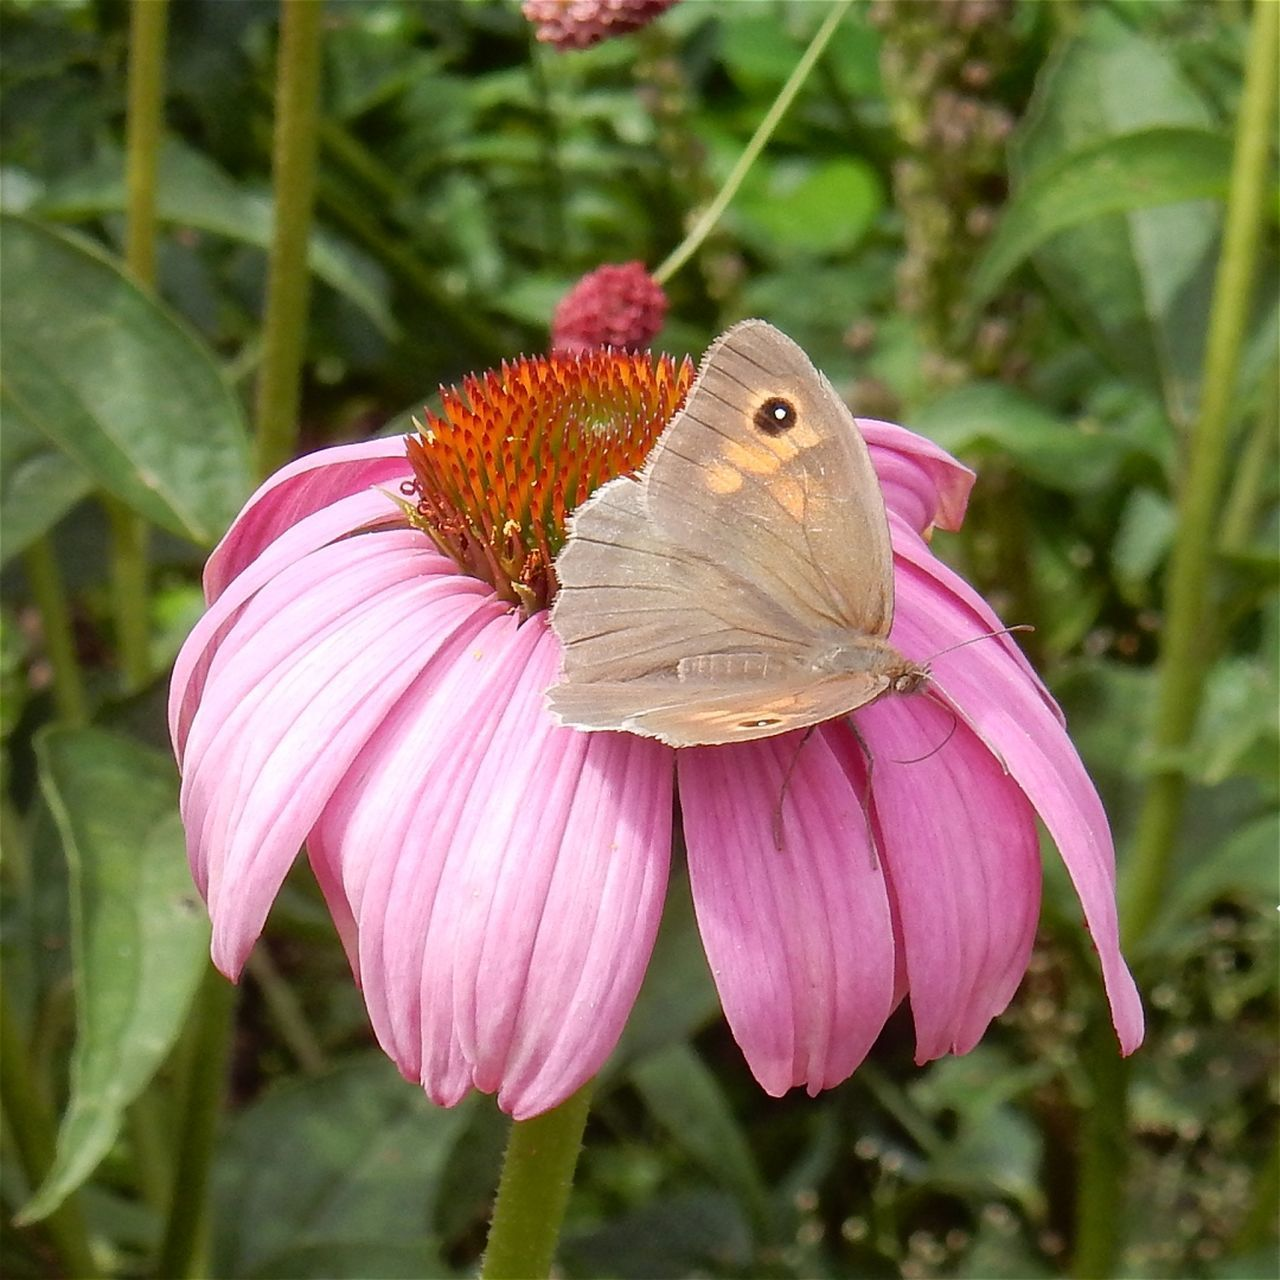 one animal, insect, flower, animal themes, animals in the wild, plant, nature, pink color, focus on foreground, growth, petal, close-up, no people, animal wildlife, fragility, outdoors, day, butterfly - insect, flower head, beauty in nature, freshness, pollination